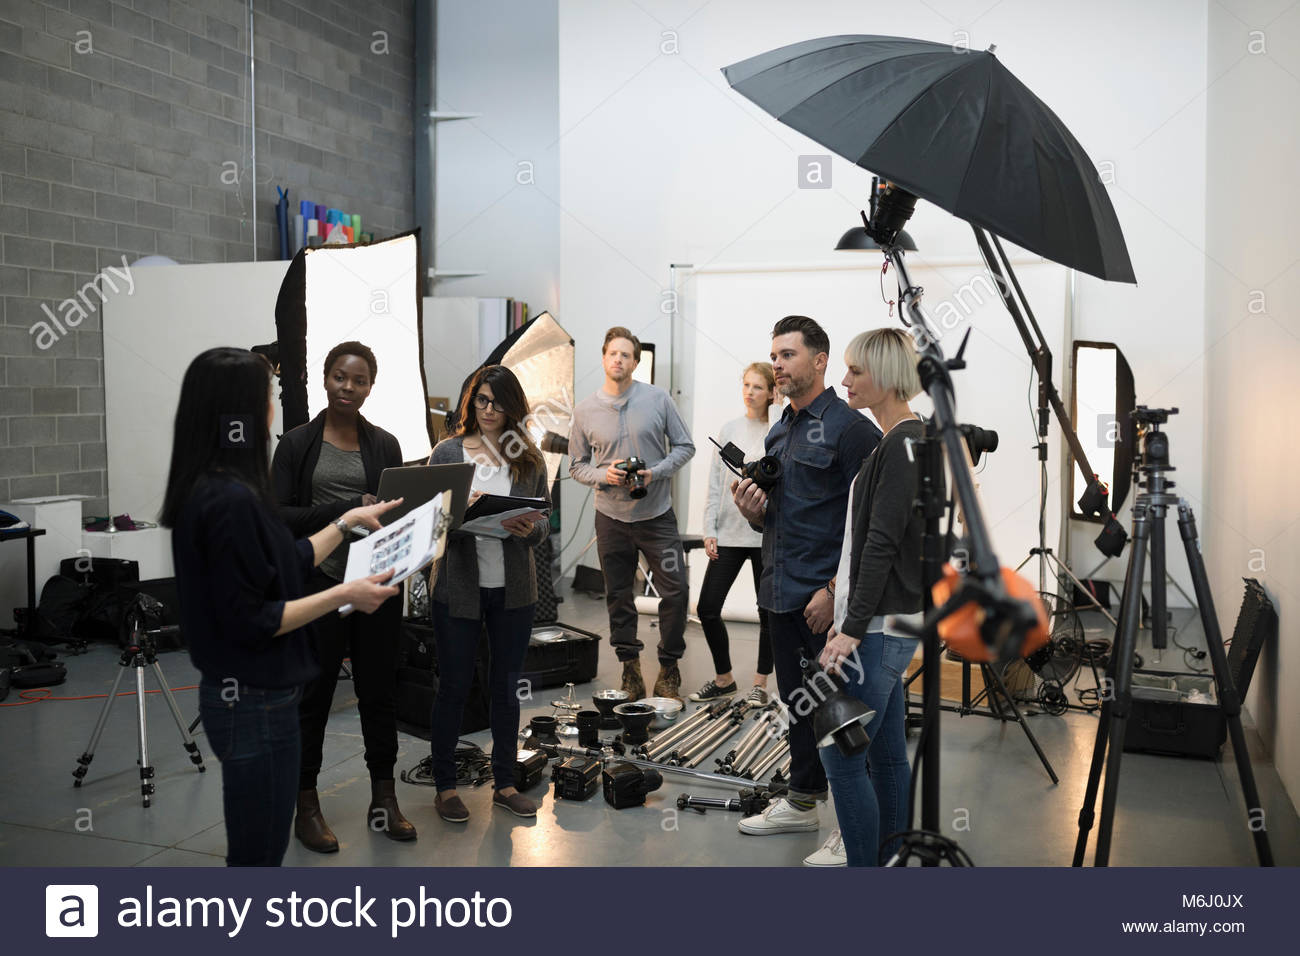 Photographers and production team meeting, preparing for photo shoot in studio Stock Photo